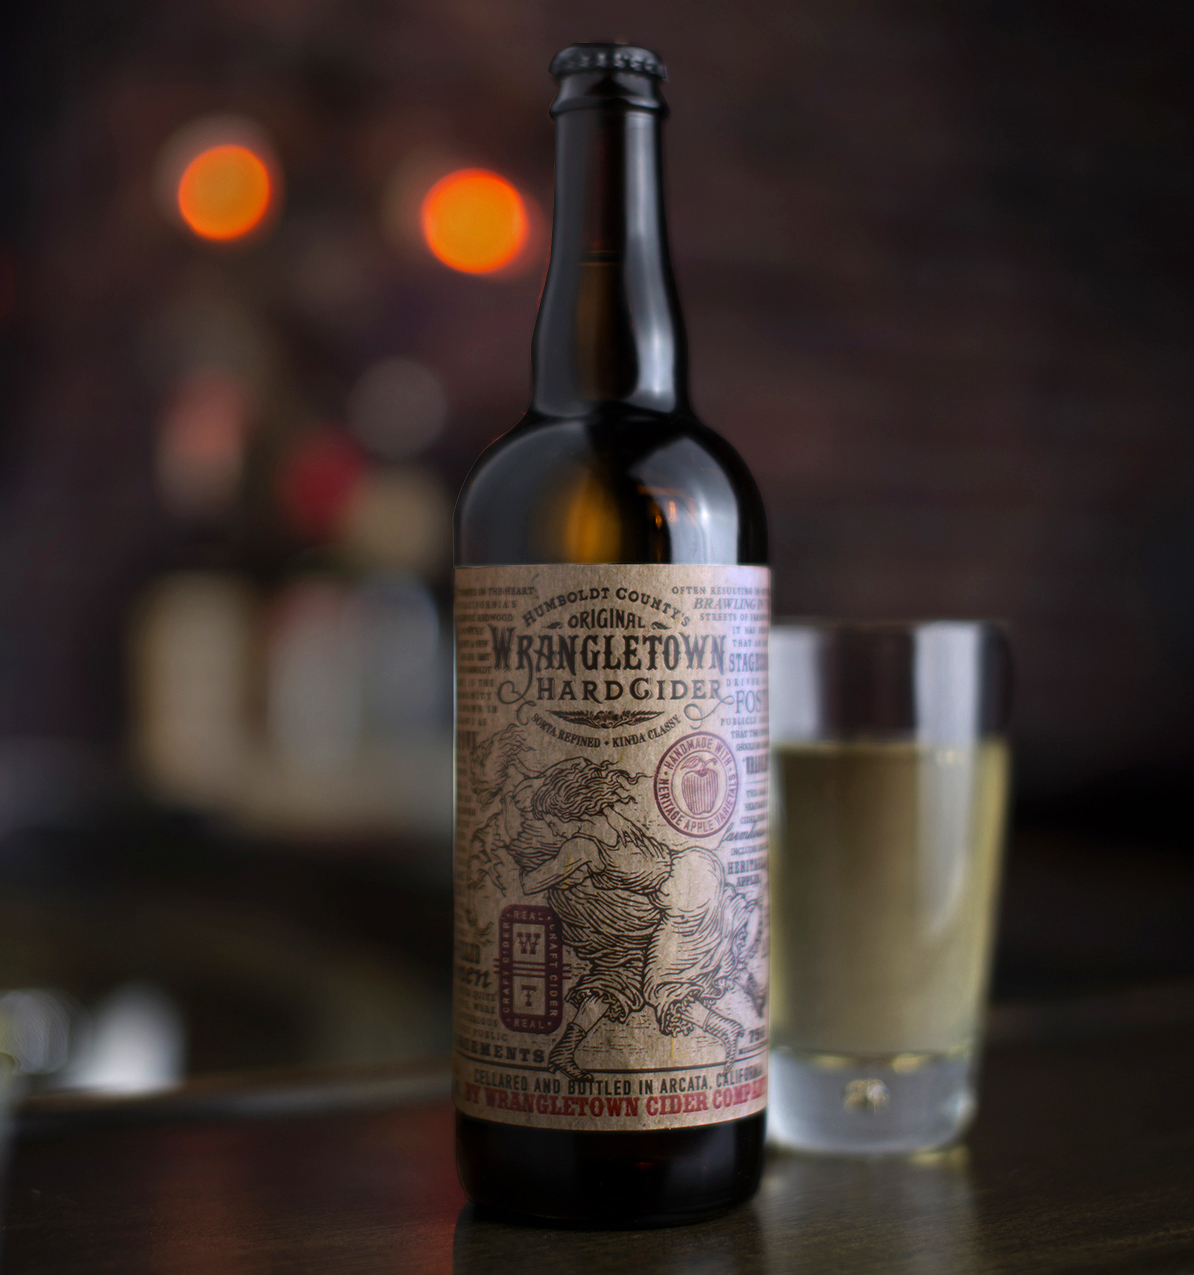 Auston Design Group - Wrangletown Cider - Still Life